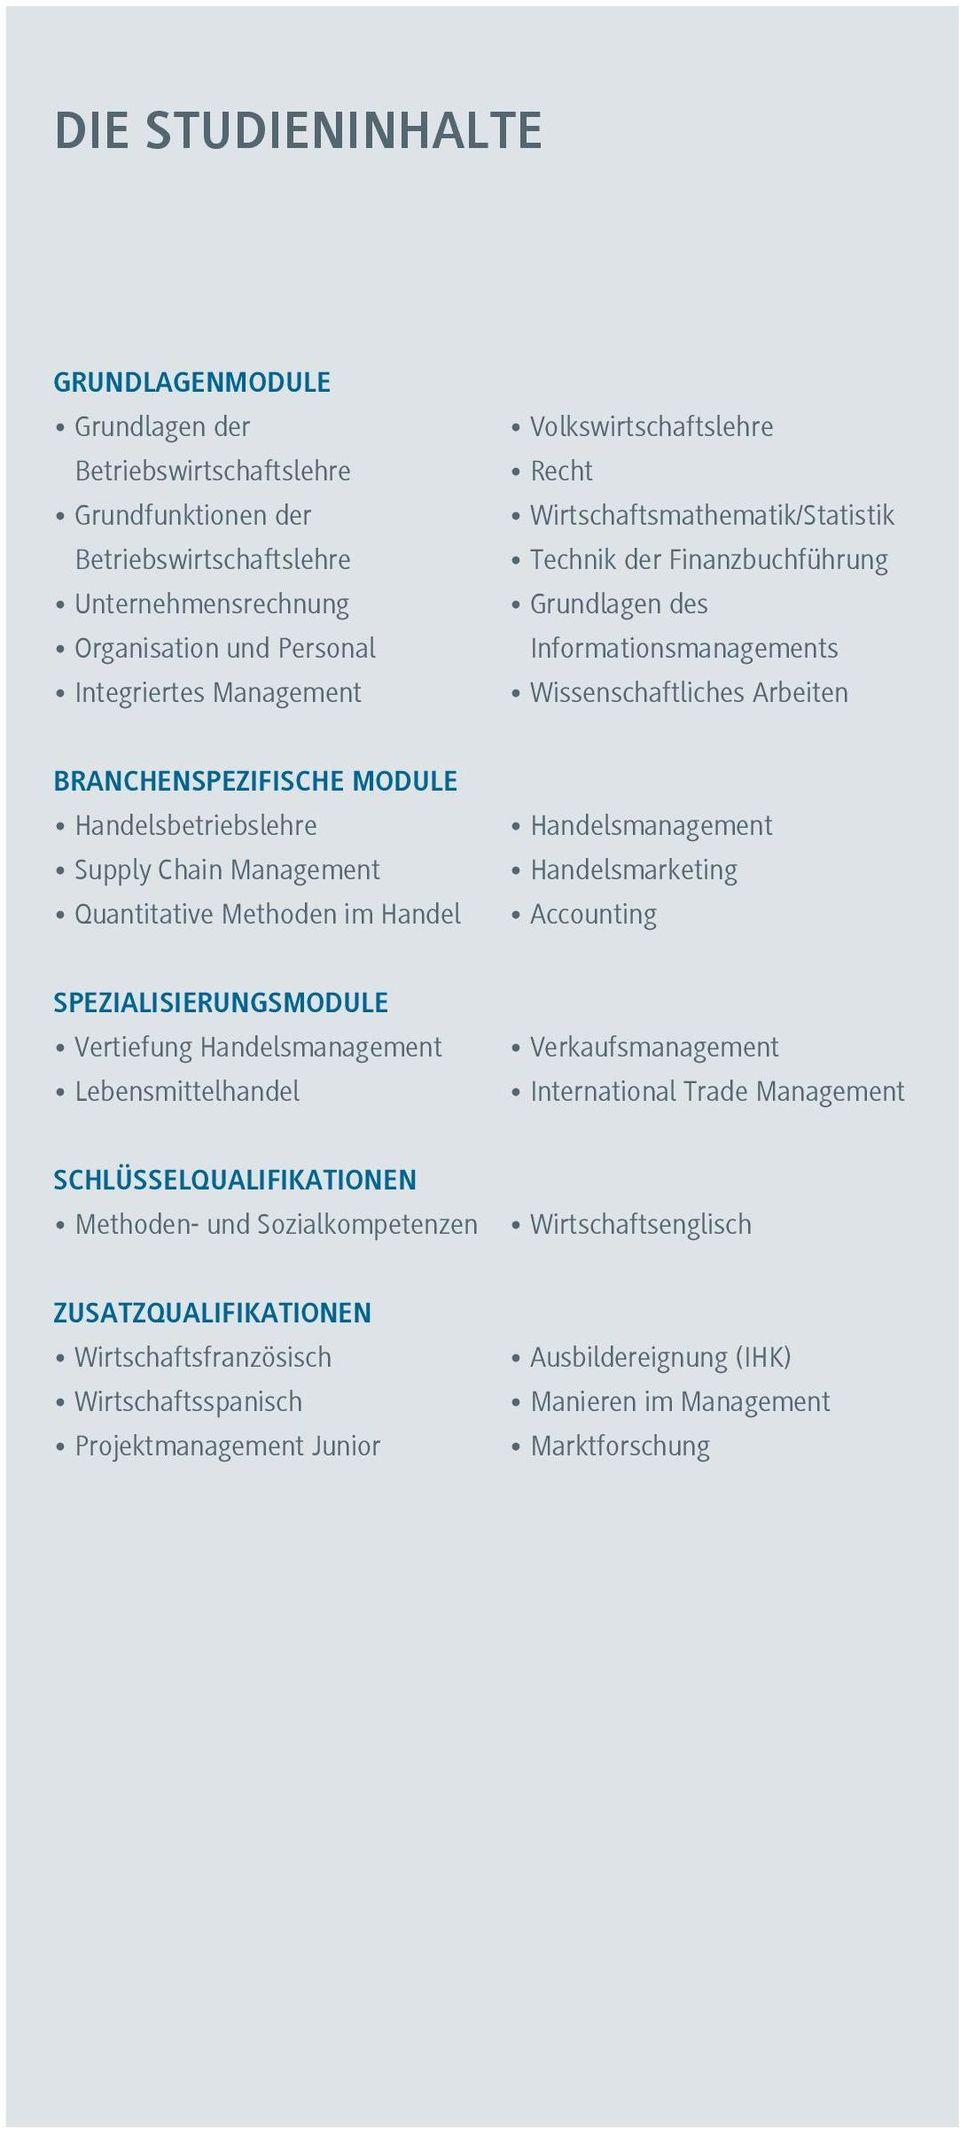 Handelsbetriebslehre Supply Chain Management Quantitative Methoden im Handel Handelsmanagement Handelsmarketing Accounting SPEZIALISIERUNGSMODULE Vertiefung Handelsmanagement Lebensmittelhandel